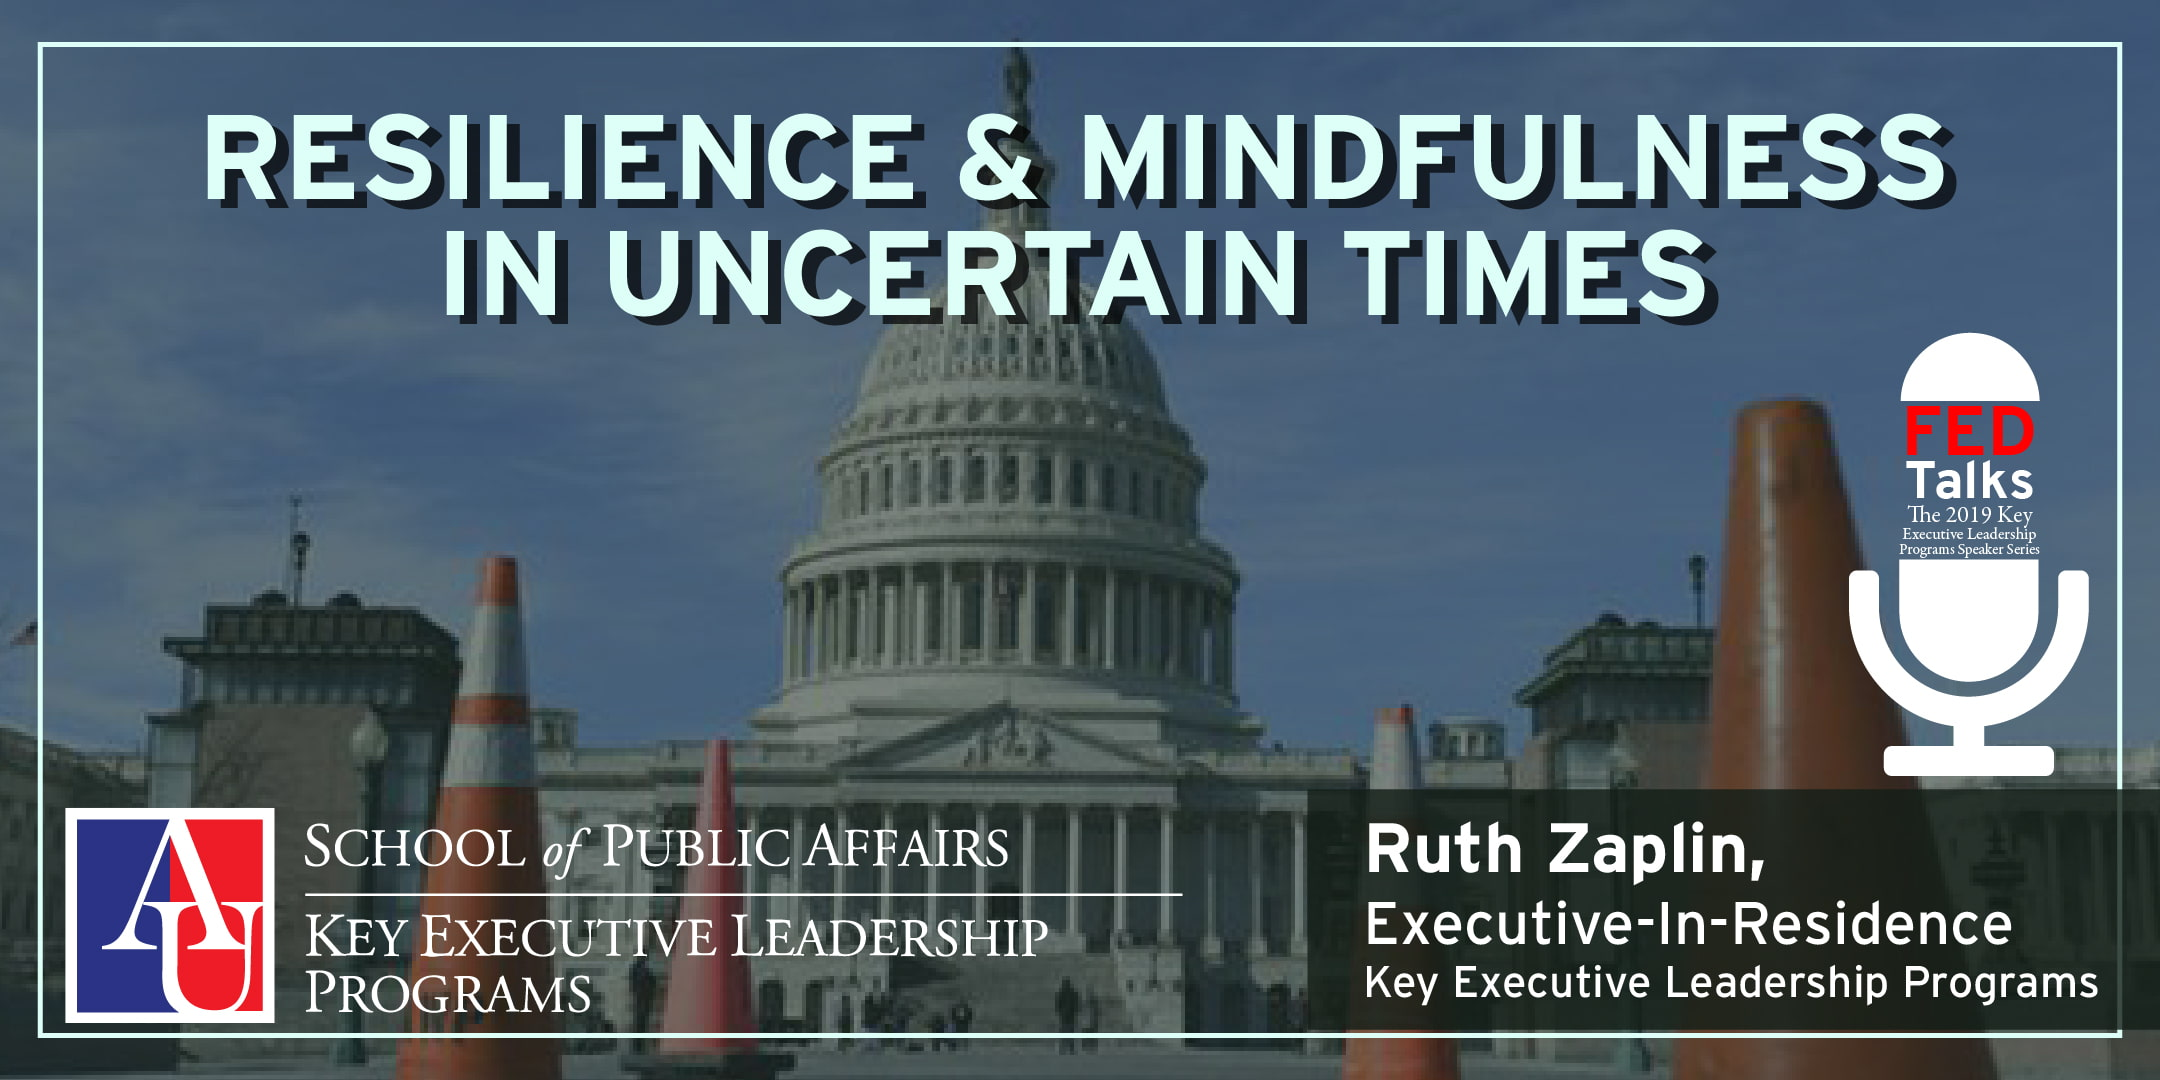 Resilience and Mindfulness in Uncertain Times with Dr. Ruth Zaplin from Feb. 2019